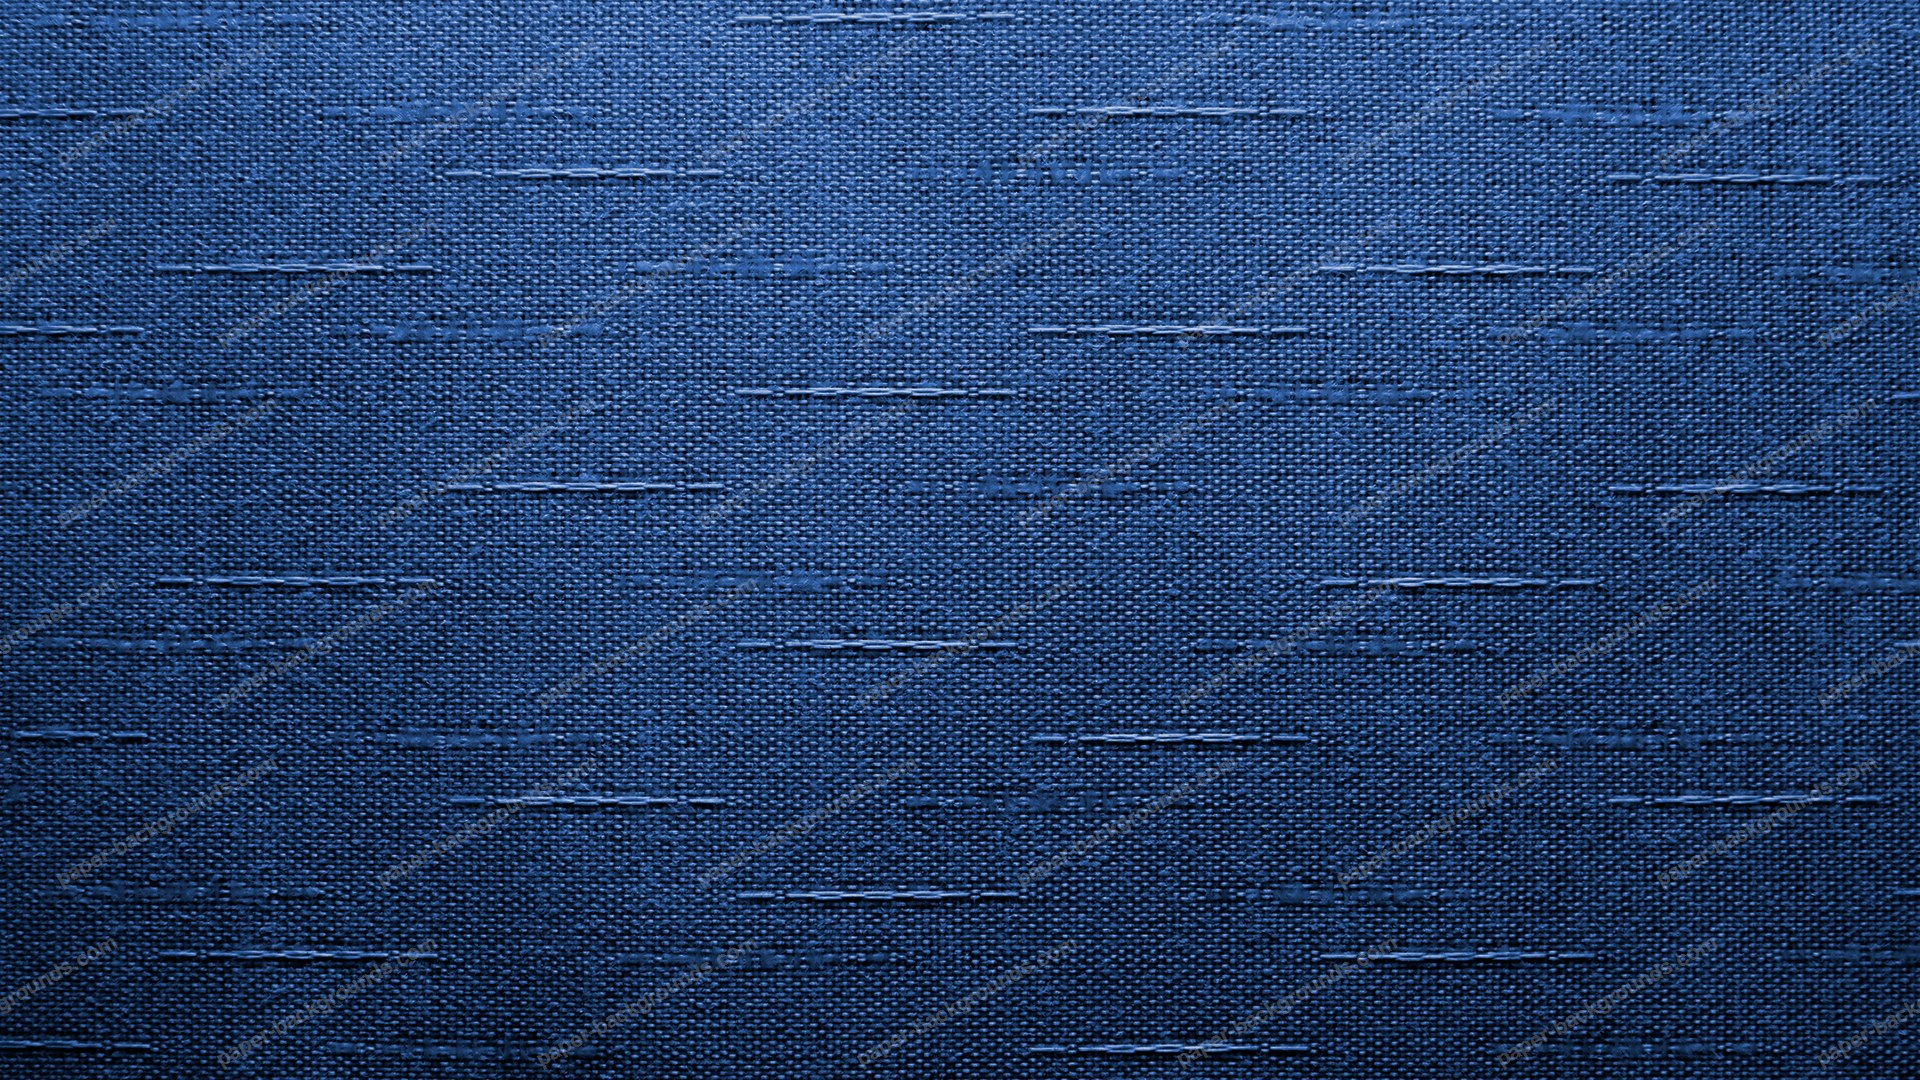 Blue Canvas Texture Background HD 1920 x 1080p